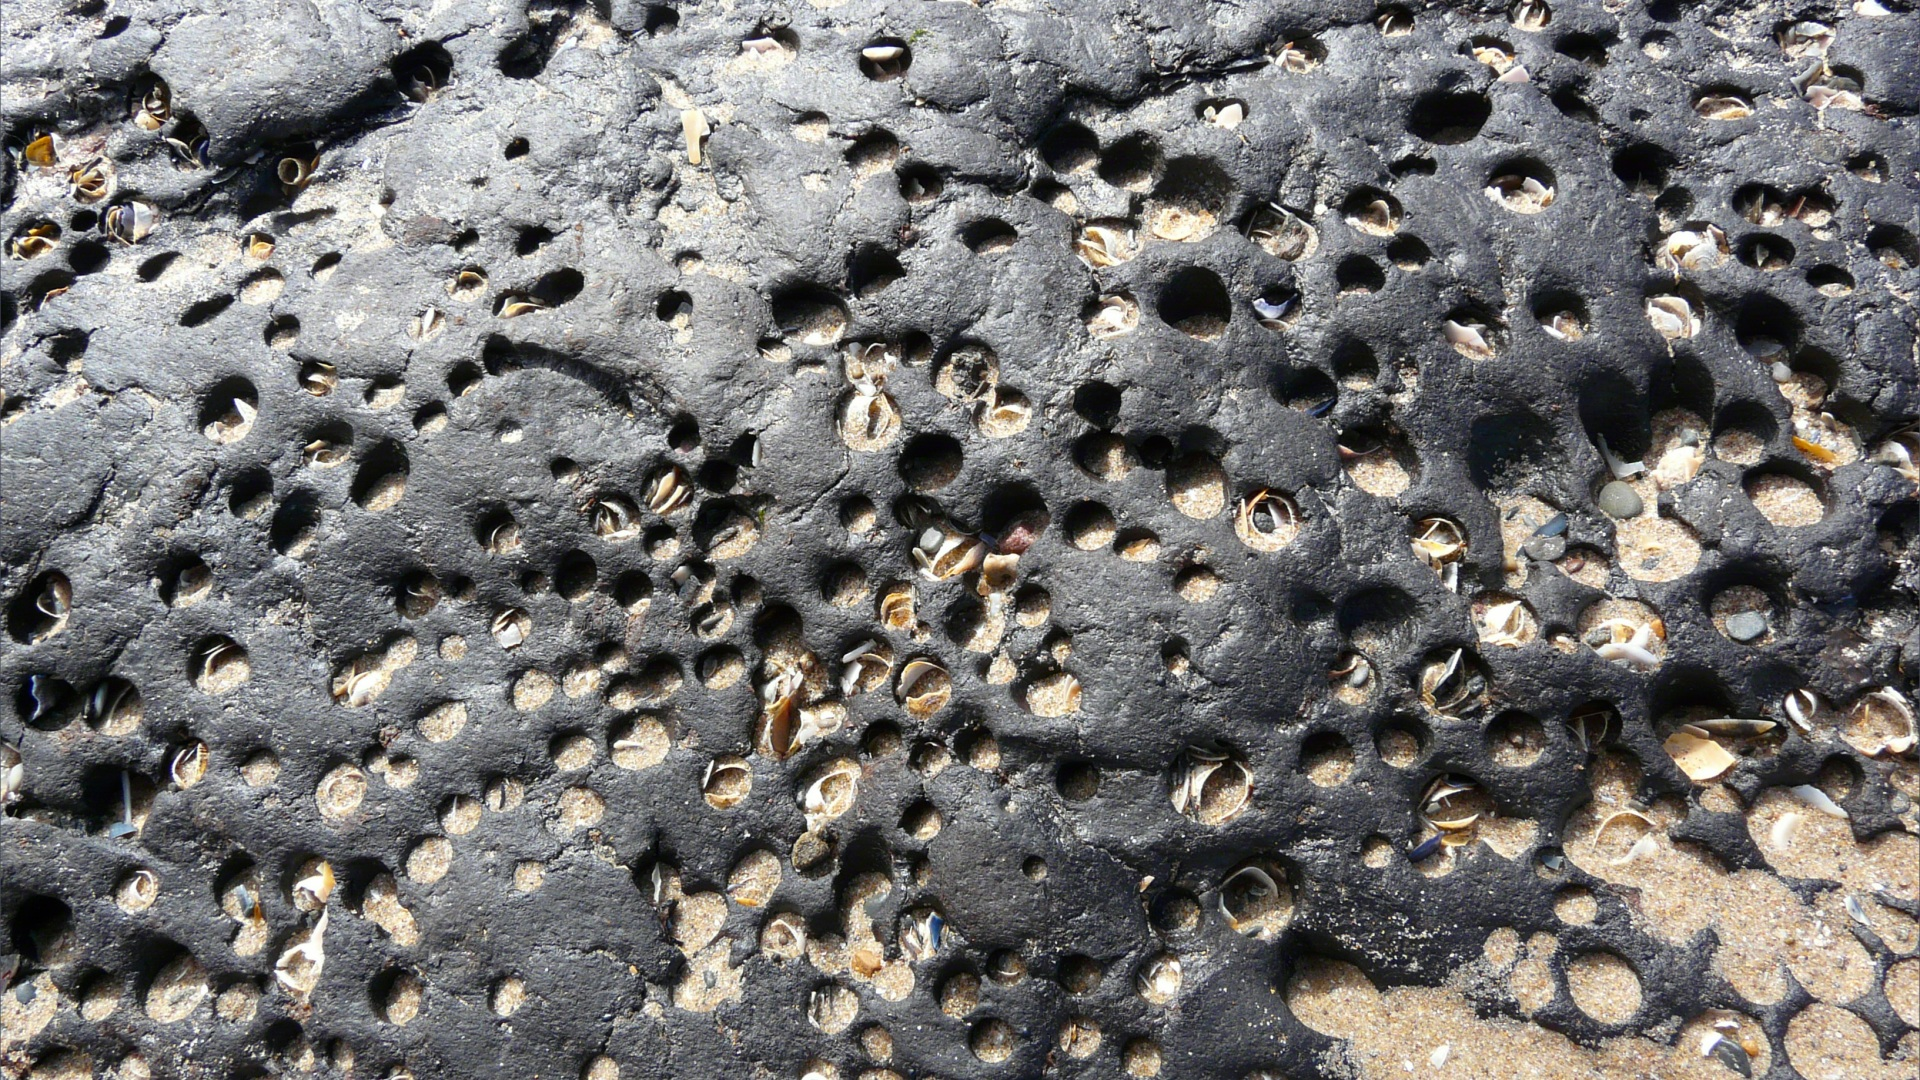 Ancient shoreline peat beds with numerous holes made by burrowing bivalve piddocks